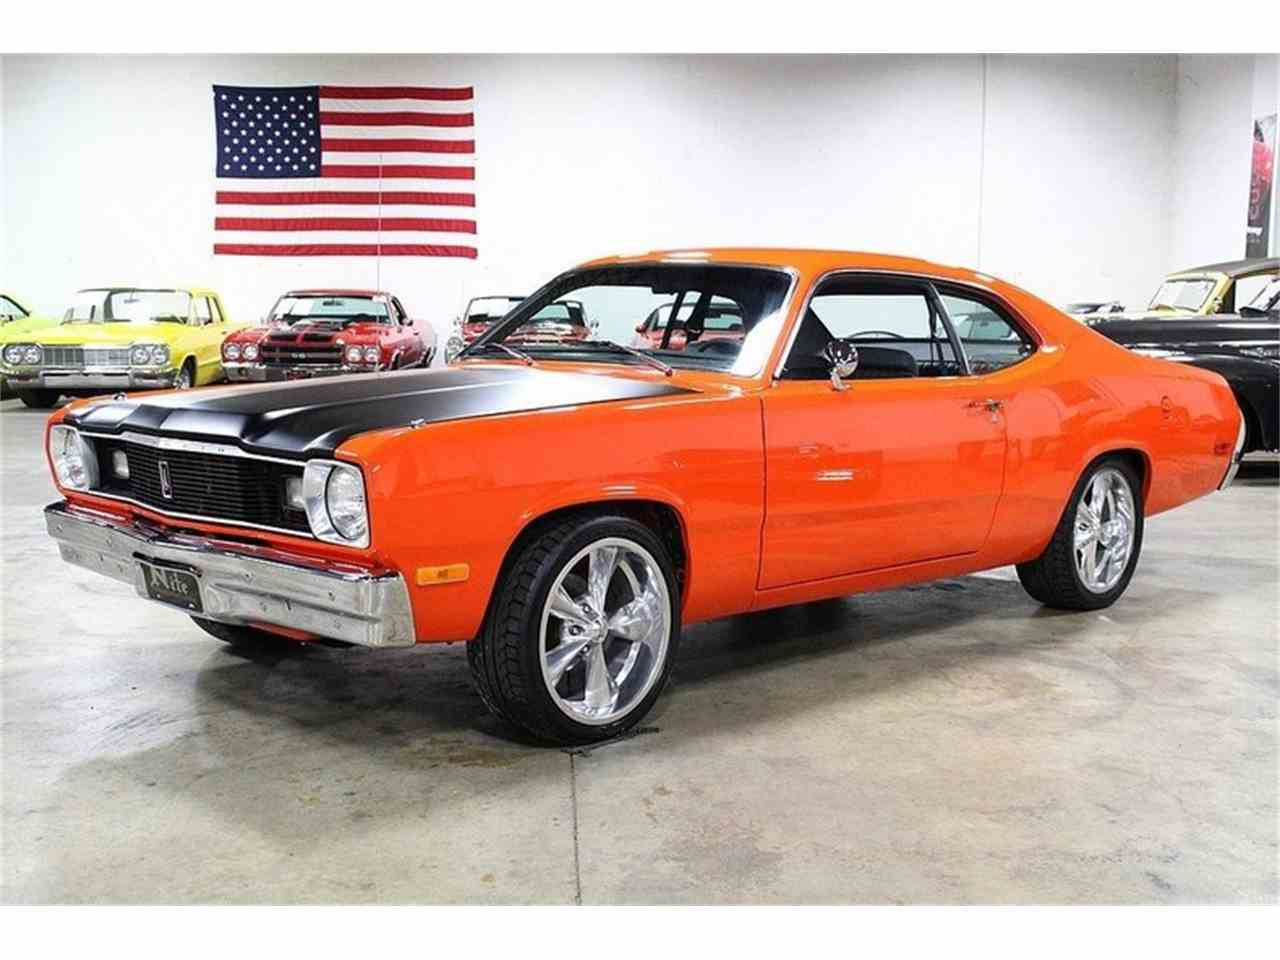 71 Plymouth Duster Wiring Diagram besides Car Radio Wiring Diagram as well 70 And 71 Valiant Duster Wiring Diagram furthermore 1974 Dodge Van Wiring Diagram besides 1971 Plymouth Barracuda Wiring Diagrams. on plymouth barracuda wiring diagrams